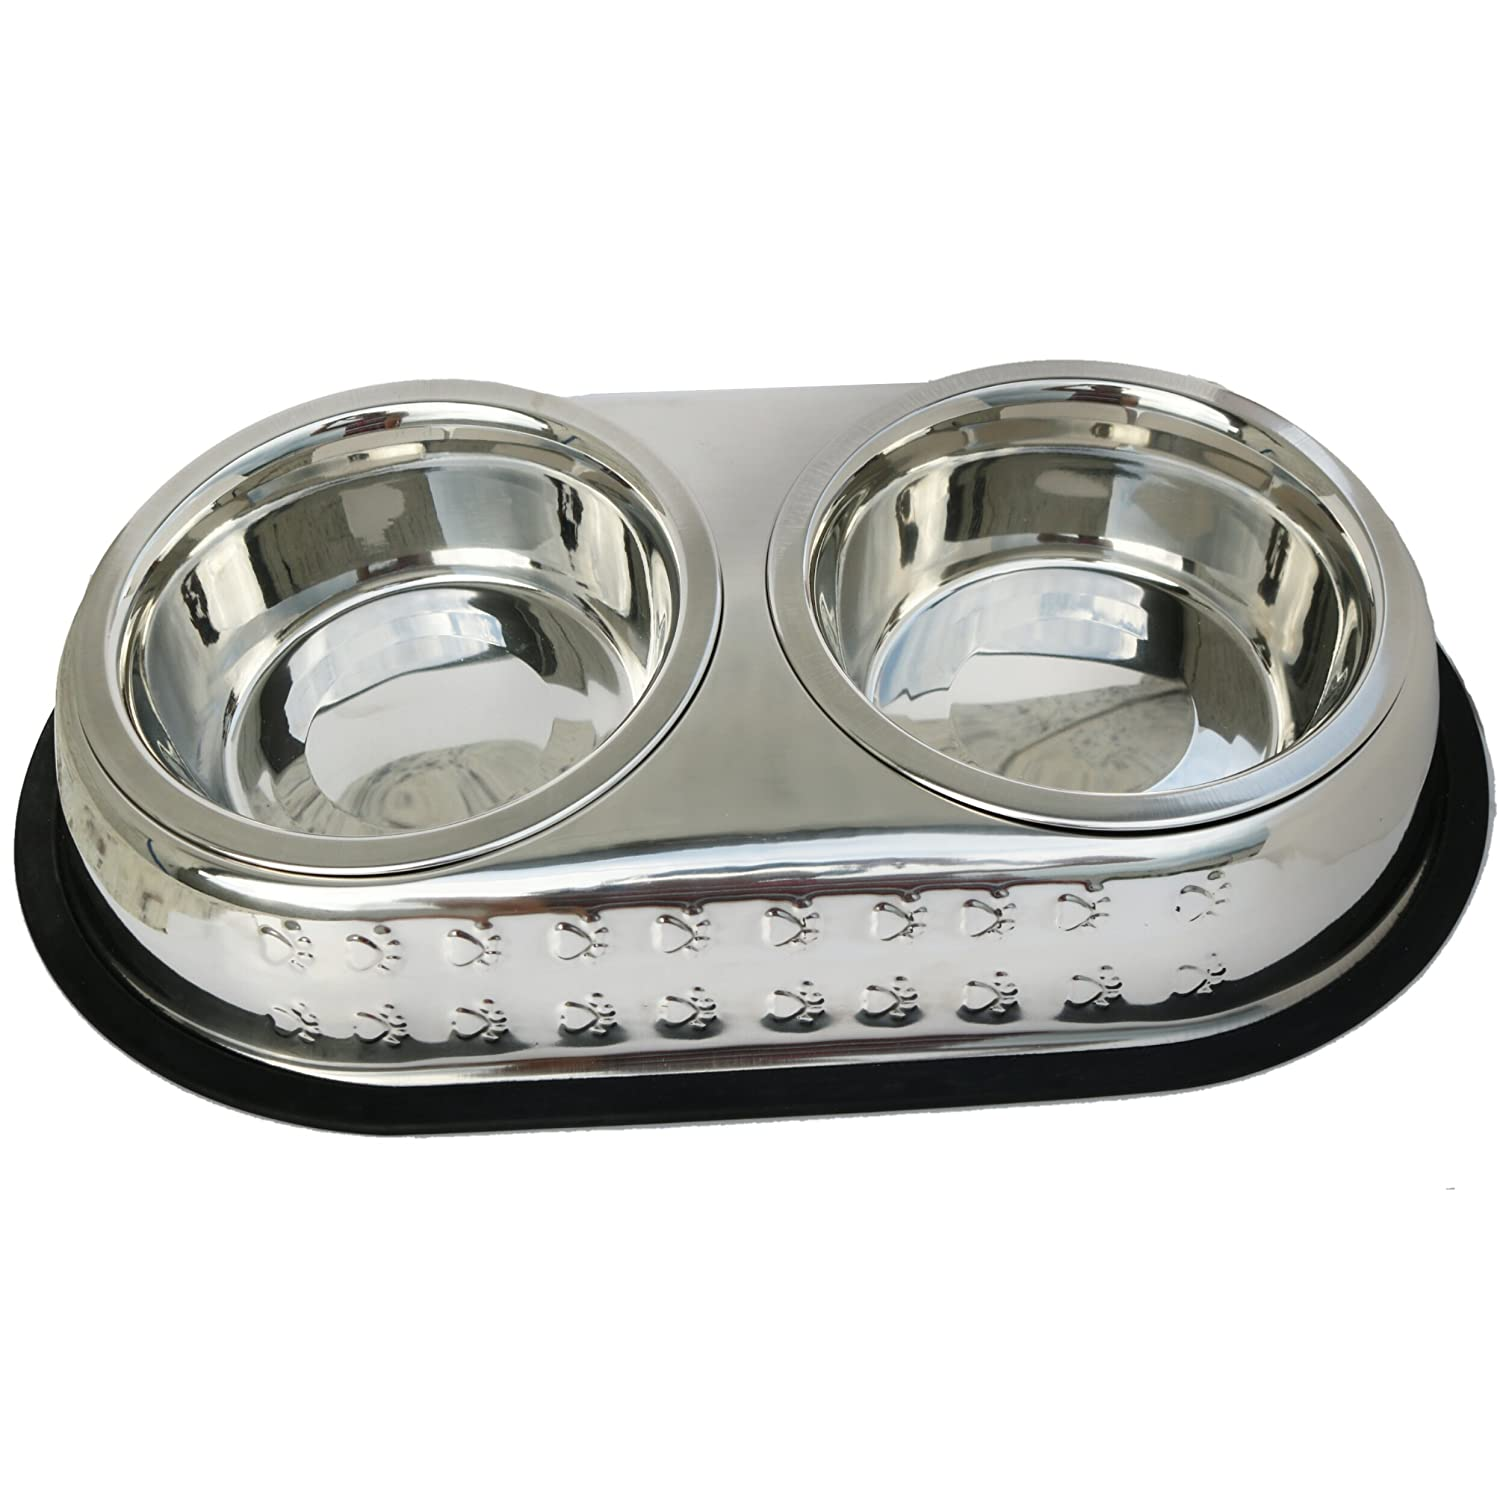 Double Dish Chrome Embossed Stainless Steel Pet Feeding Station by Mr. Peanut